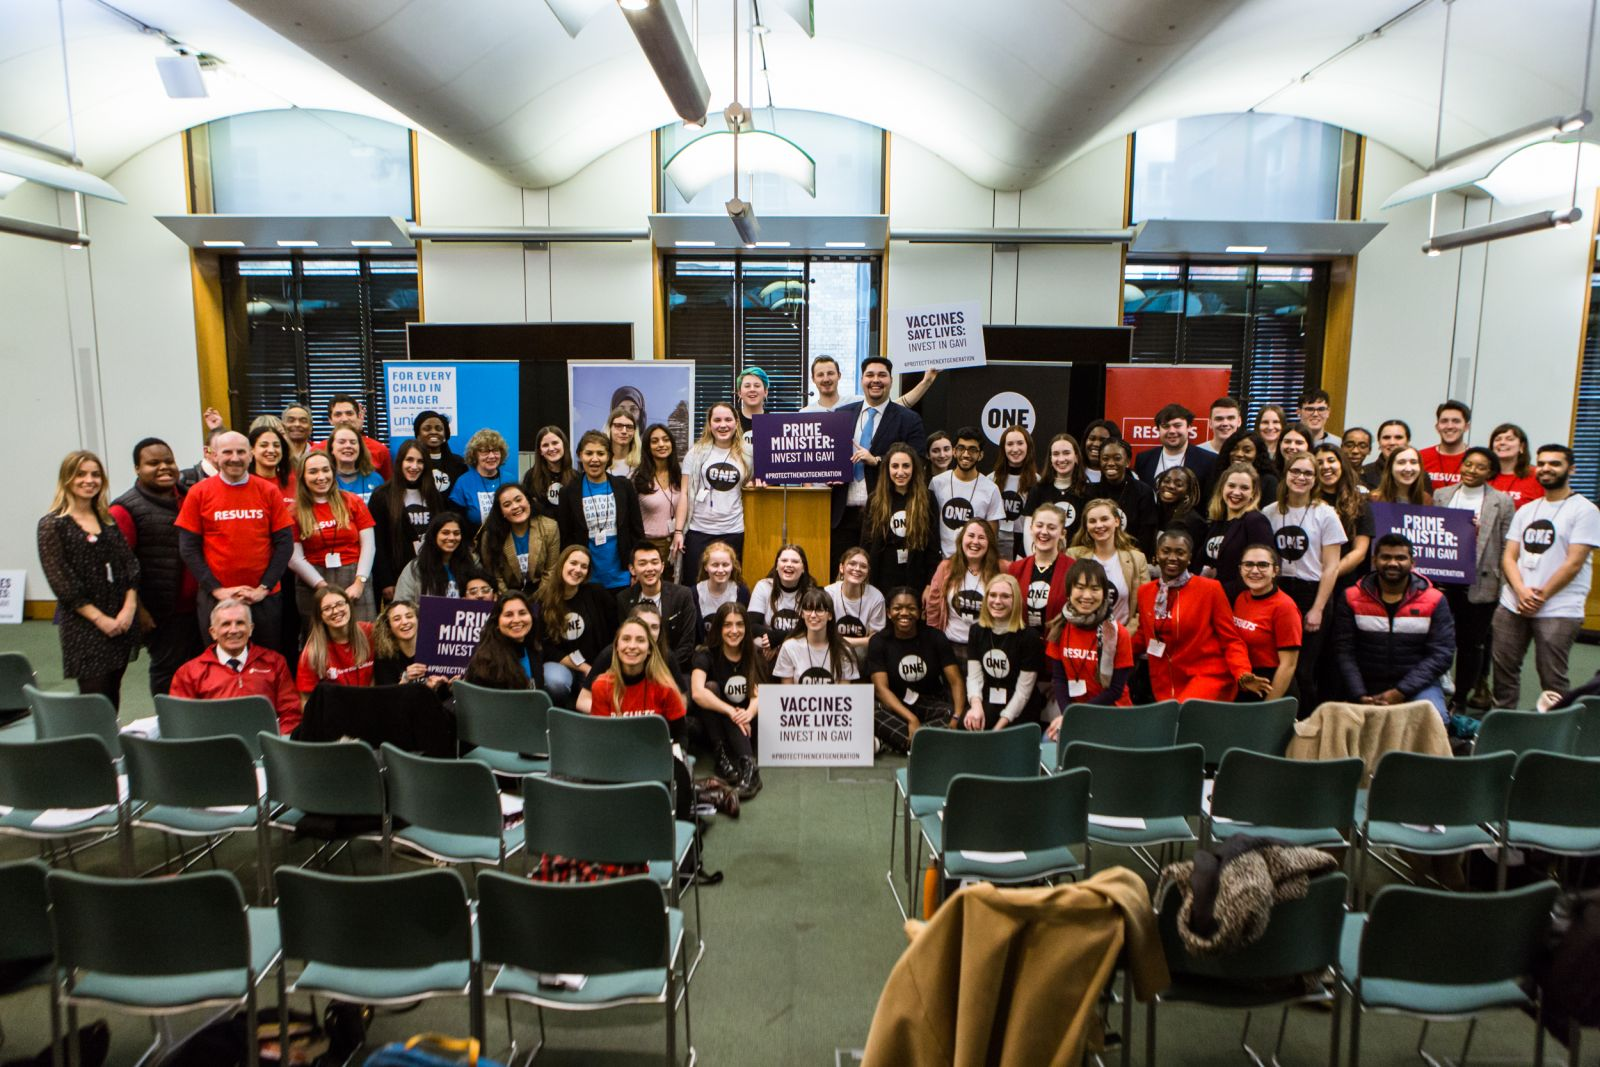 Group photo of advocates from all the organisations together in Portcullis House